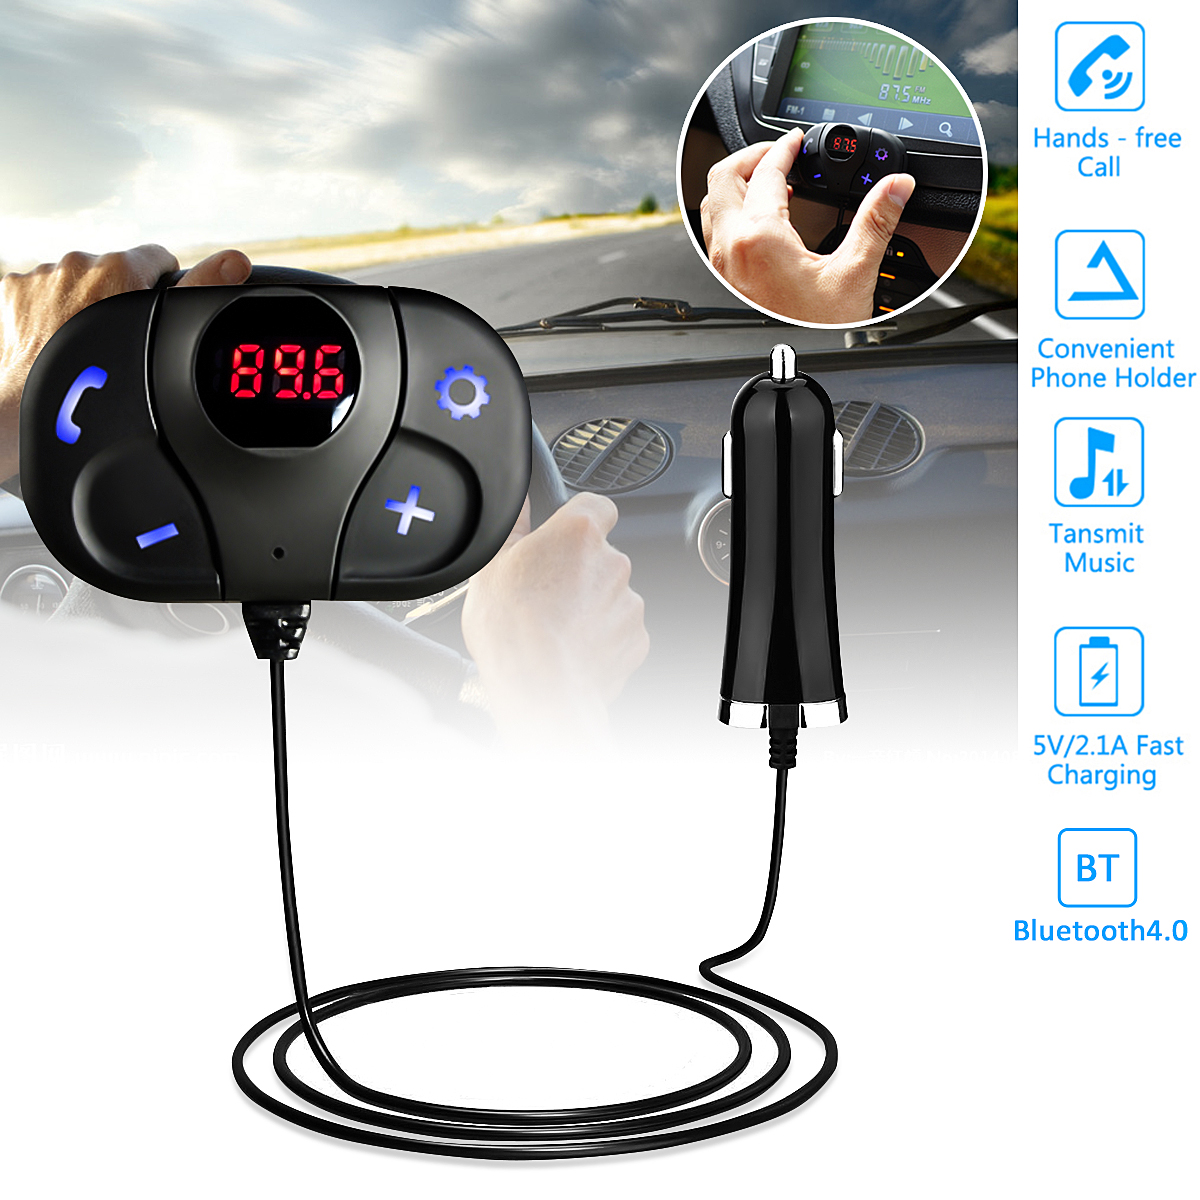 Bluetooth Car MP3 Player Wireless USB FM Transmitter Handsfree Radio Adapter Modulator with LED Display